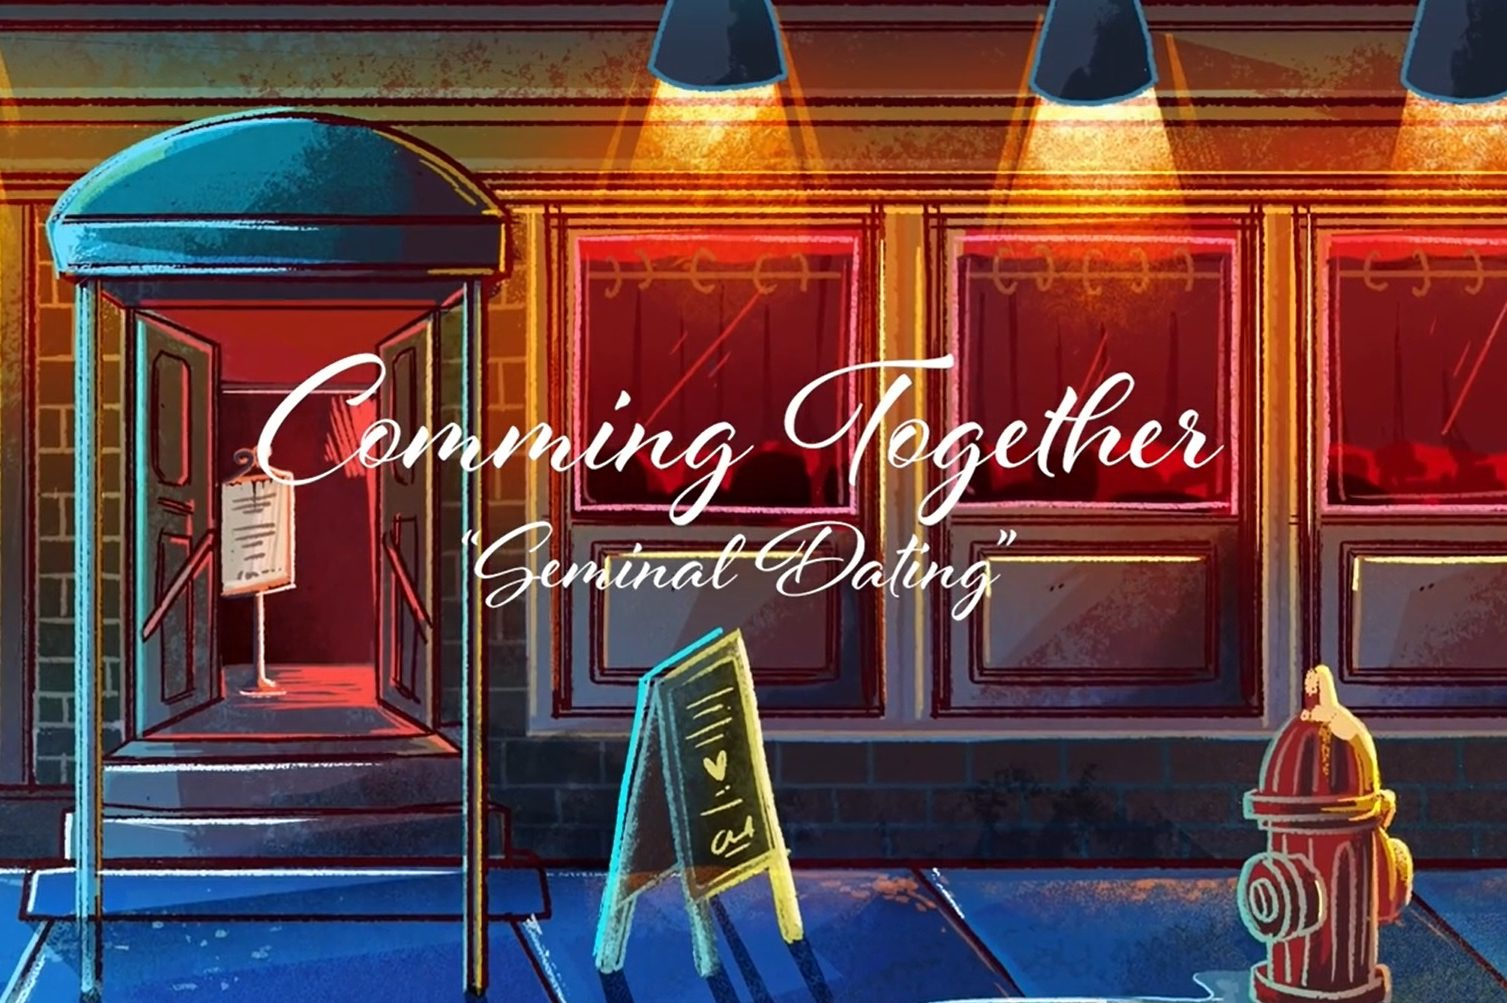 Comming Together: Seminal Dating